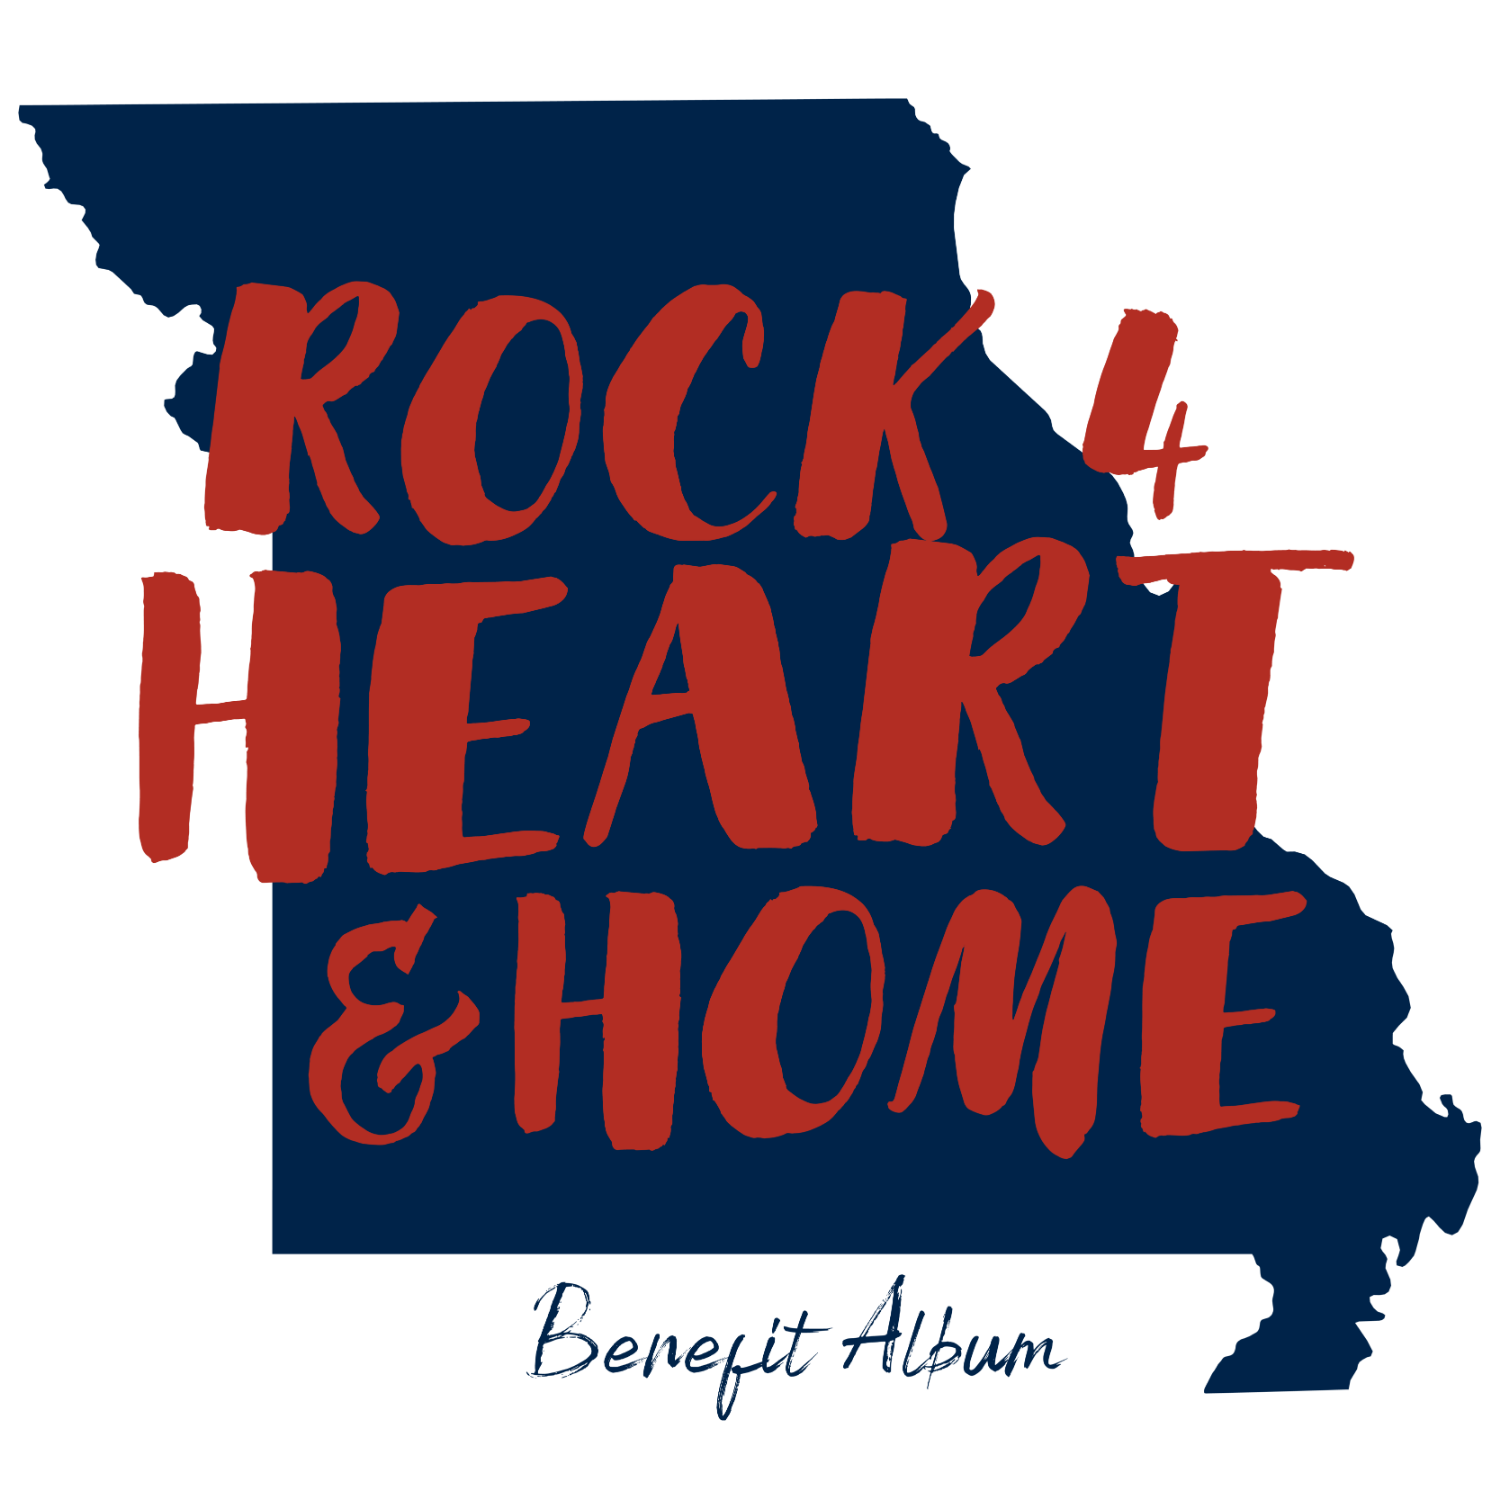 Rock 4 Heart and Home Benefit Album